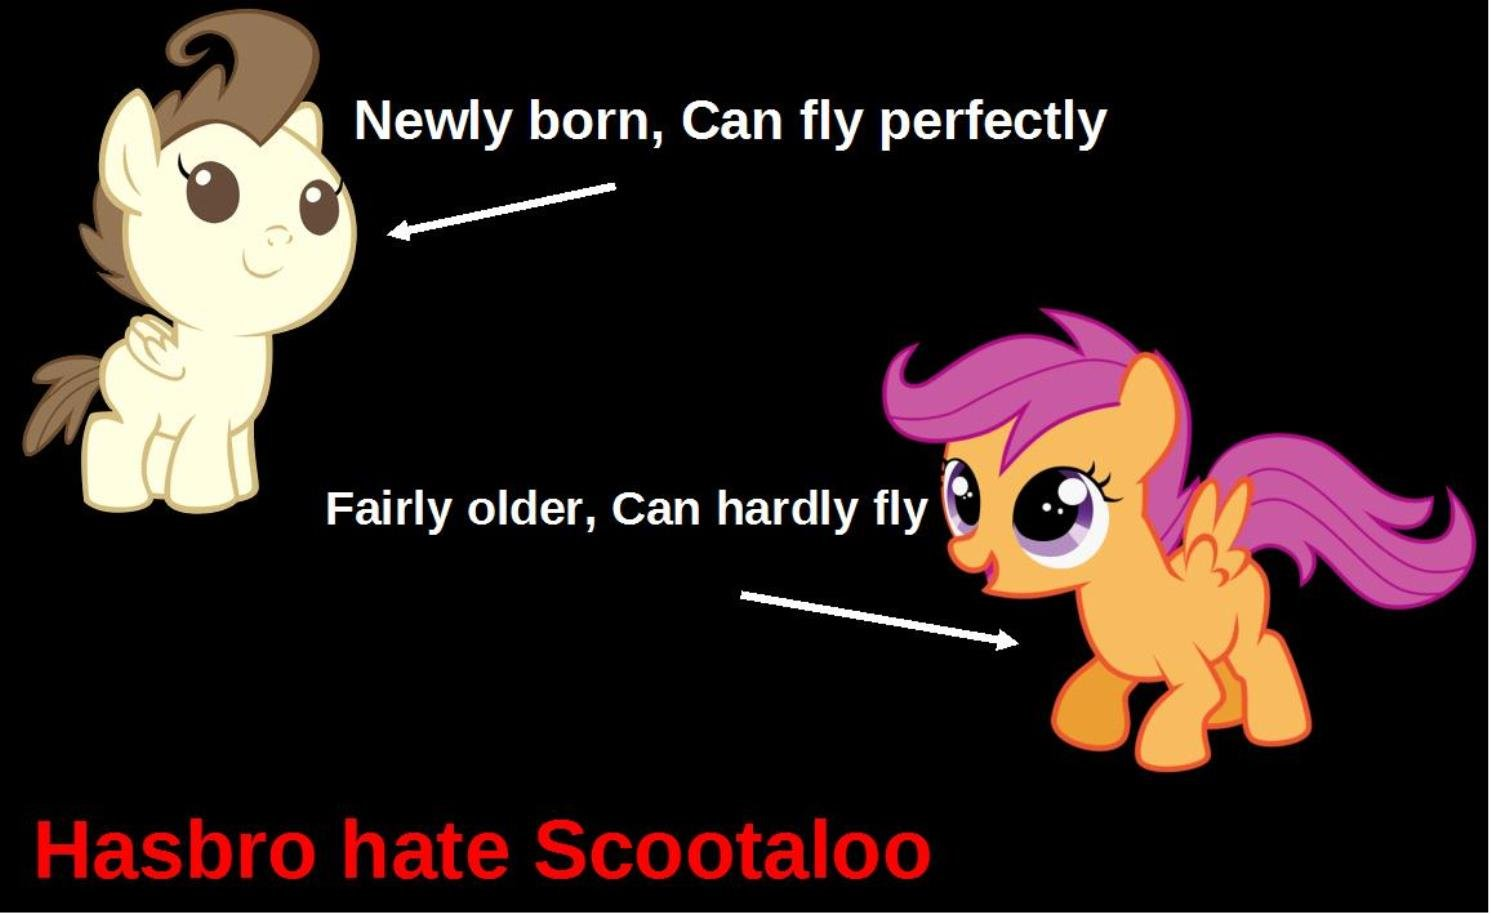 hasbro hate scootaloo by thunderrdash-d6